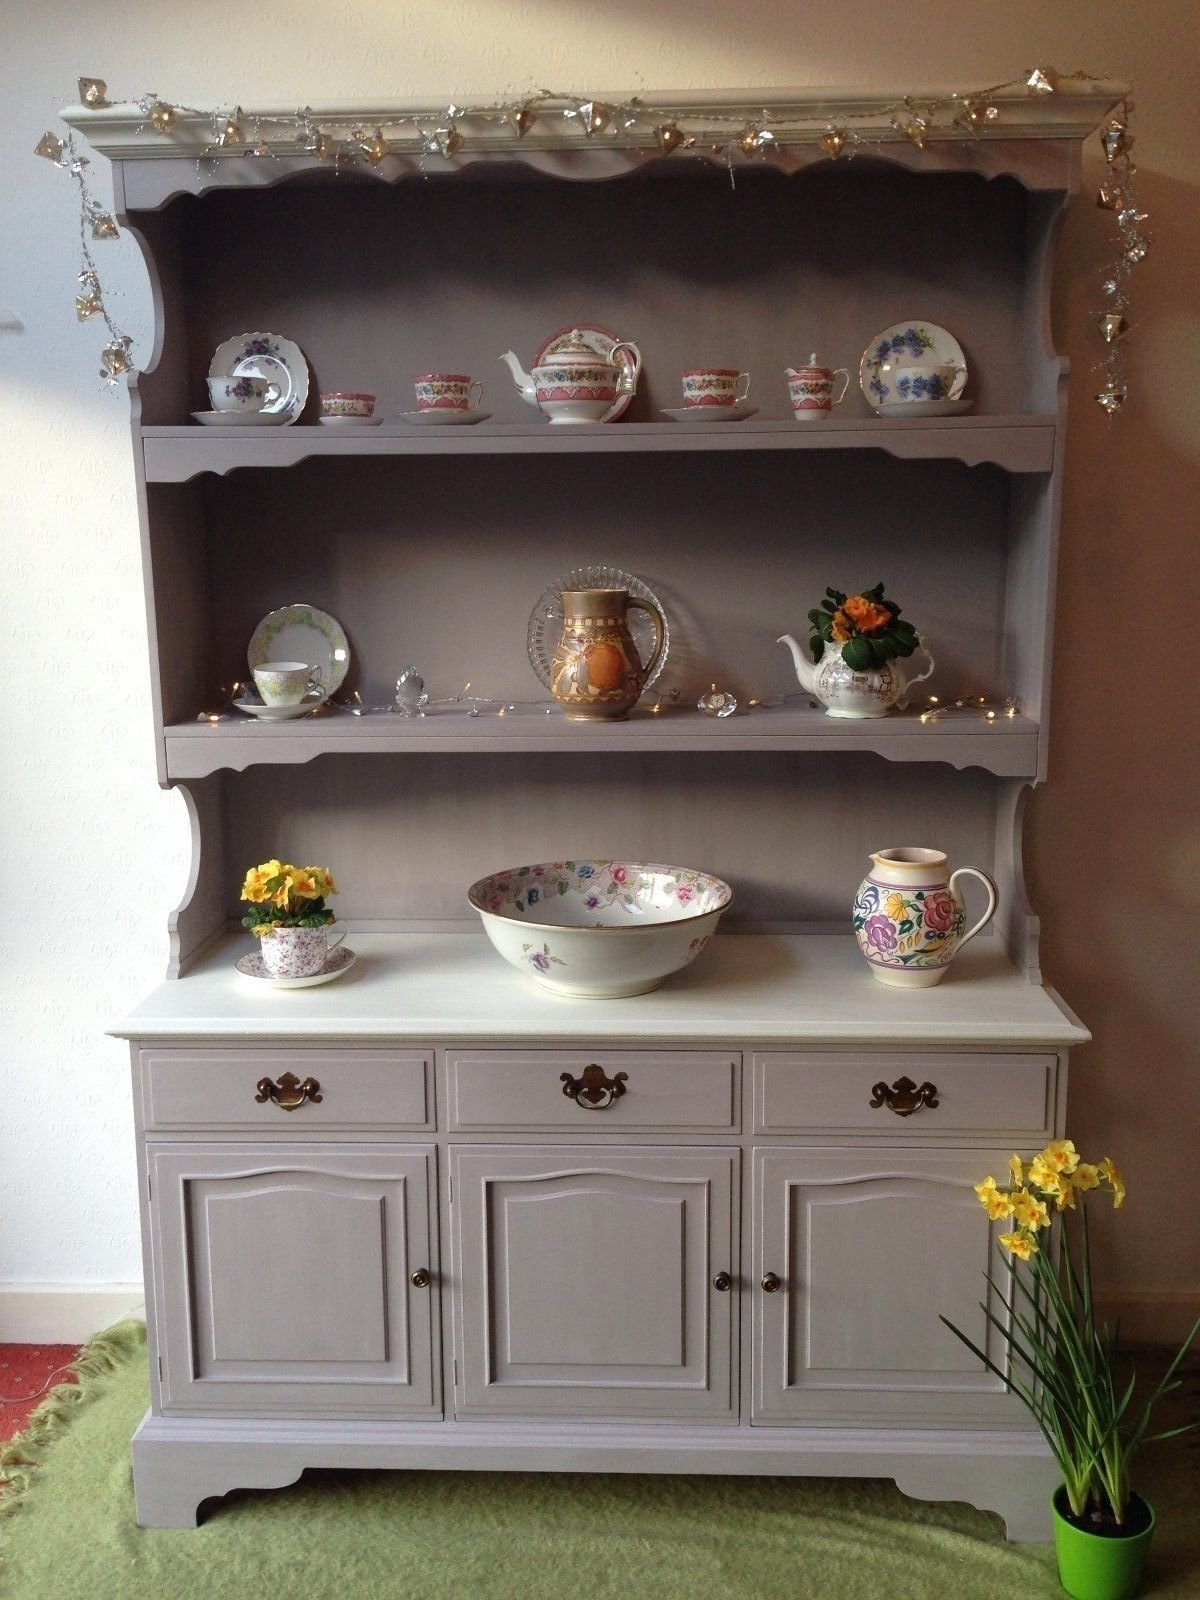 10 Pretty Annie Sloan Painted Furniture Ideas stunning large welsh dresserhand painted in annie sloan paloma and 2020